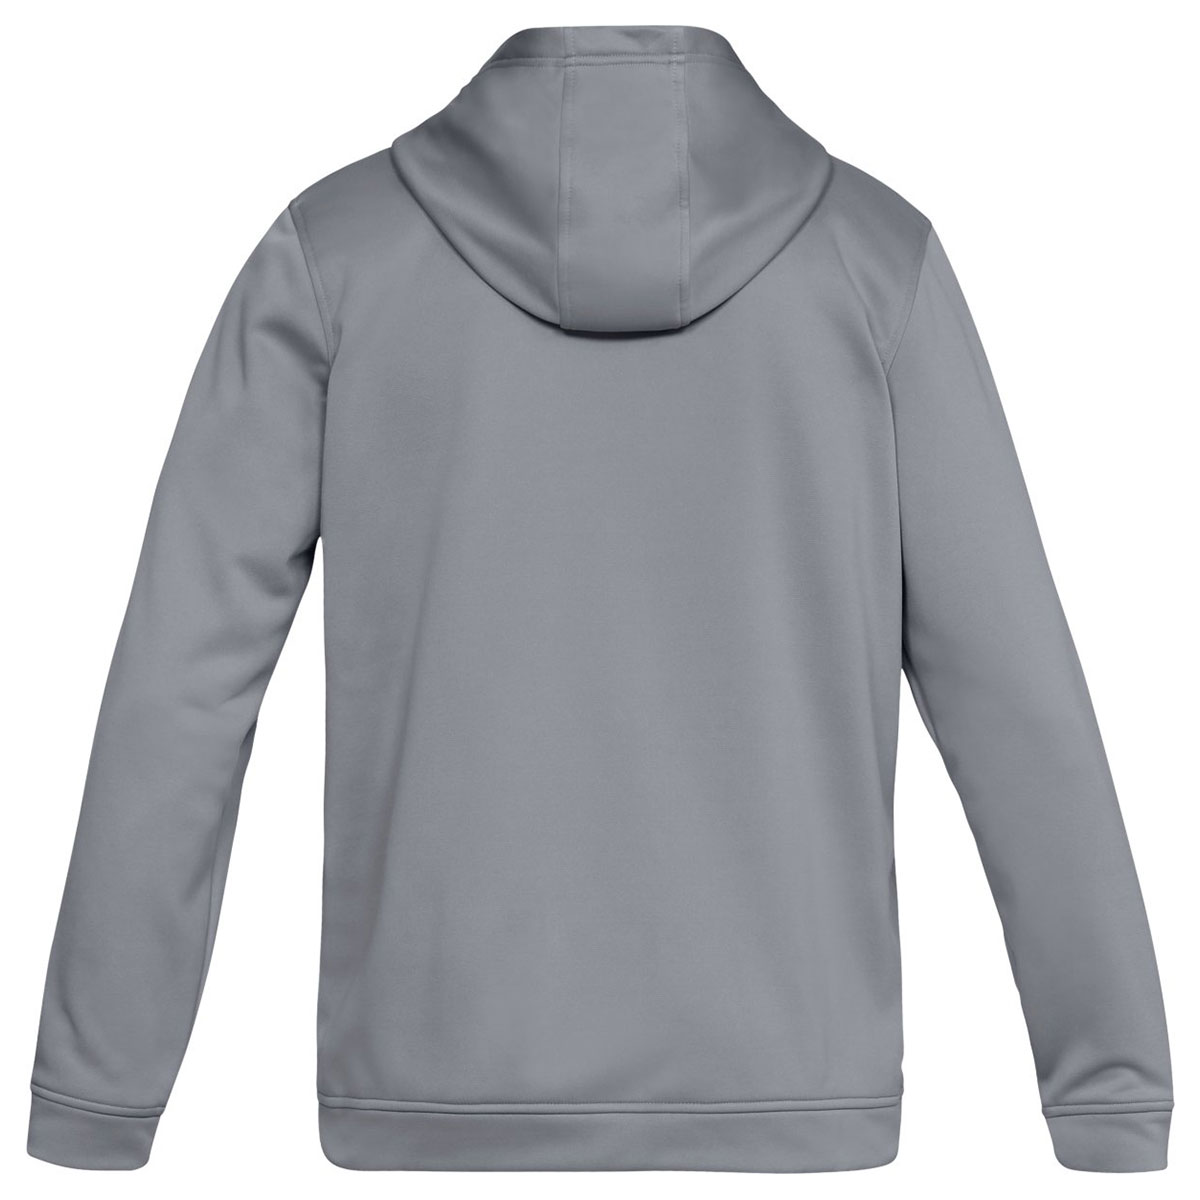 Under-Armour-Mens-Performance-Fleece-Graphic-Hoodie-Hoody-45-OFF-RRP thumbnail 9